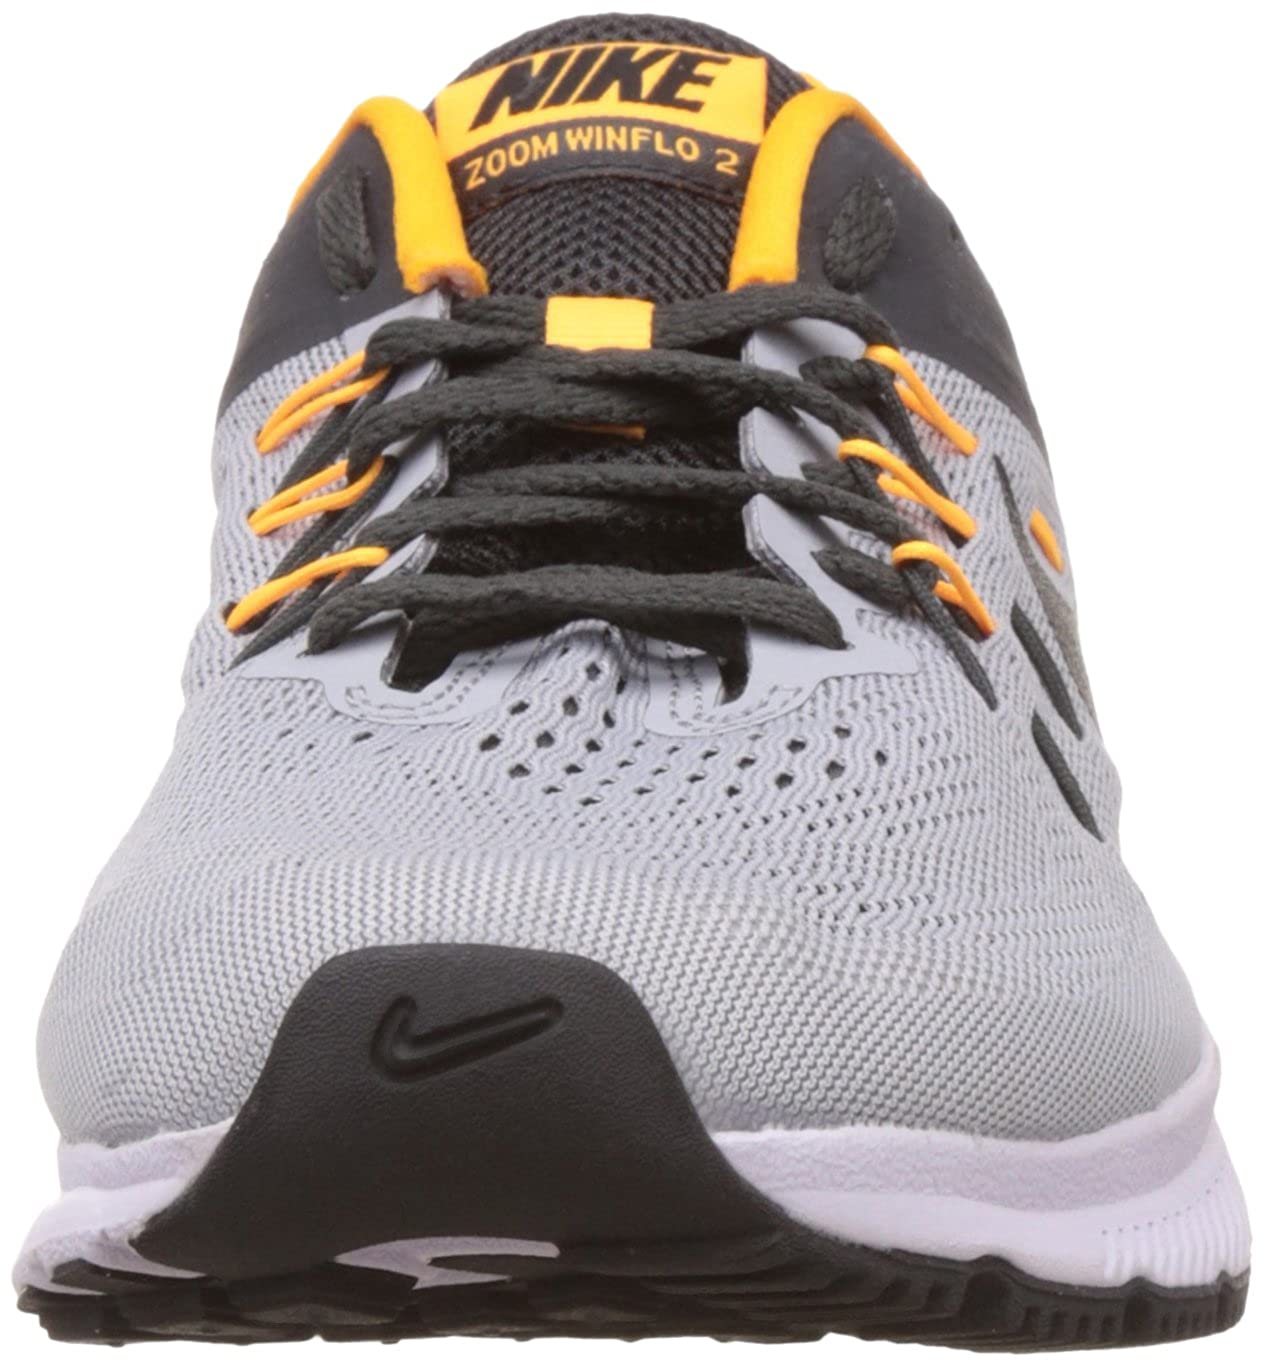 d538b79c4c7 ... best nike mens zoom winflo 2 wolf grey blk anthrct and lsr orng running  shoes 11